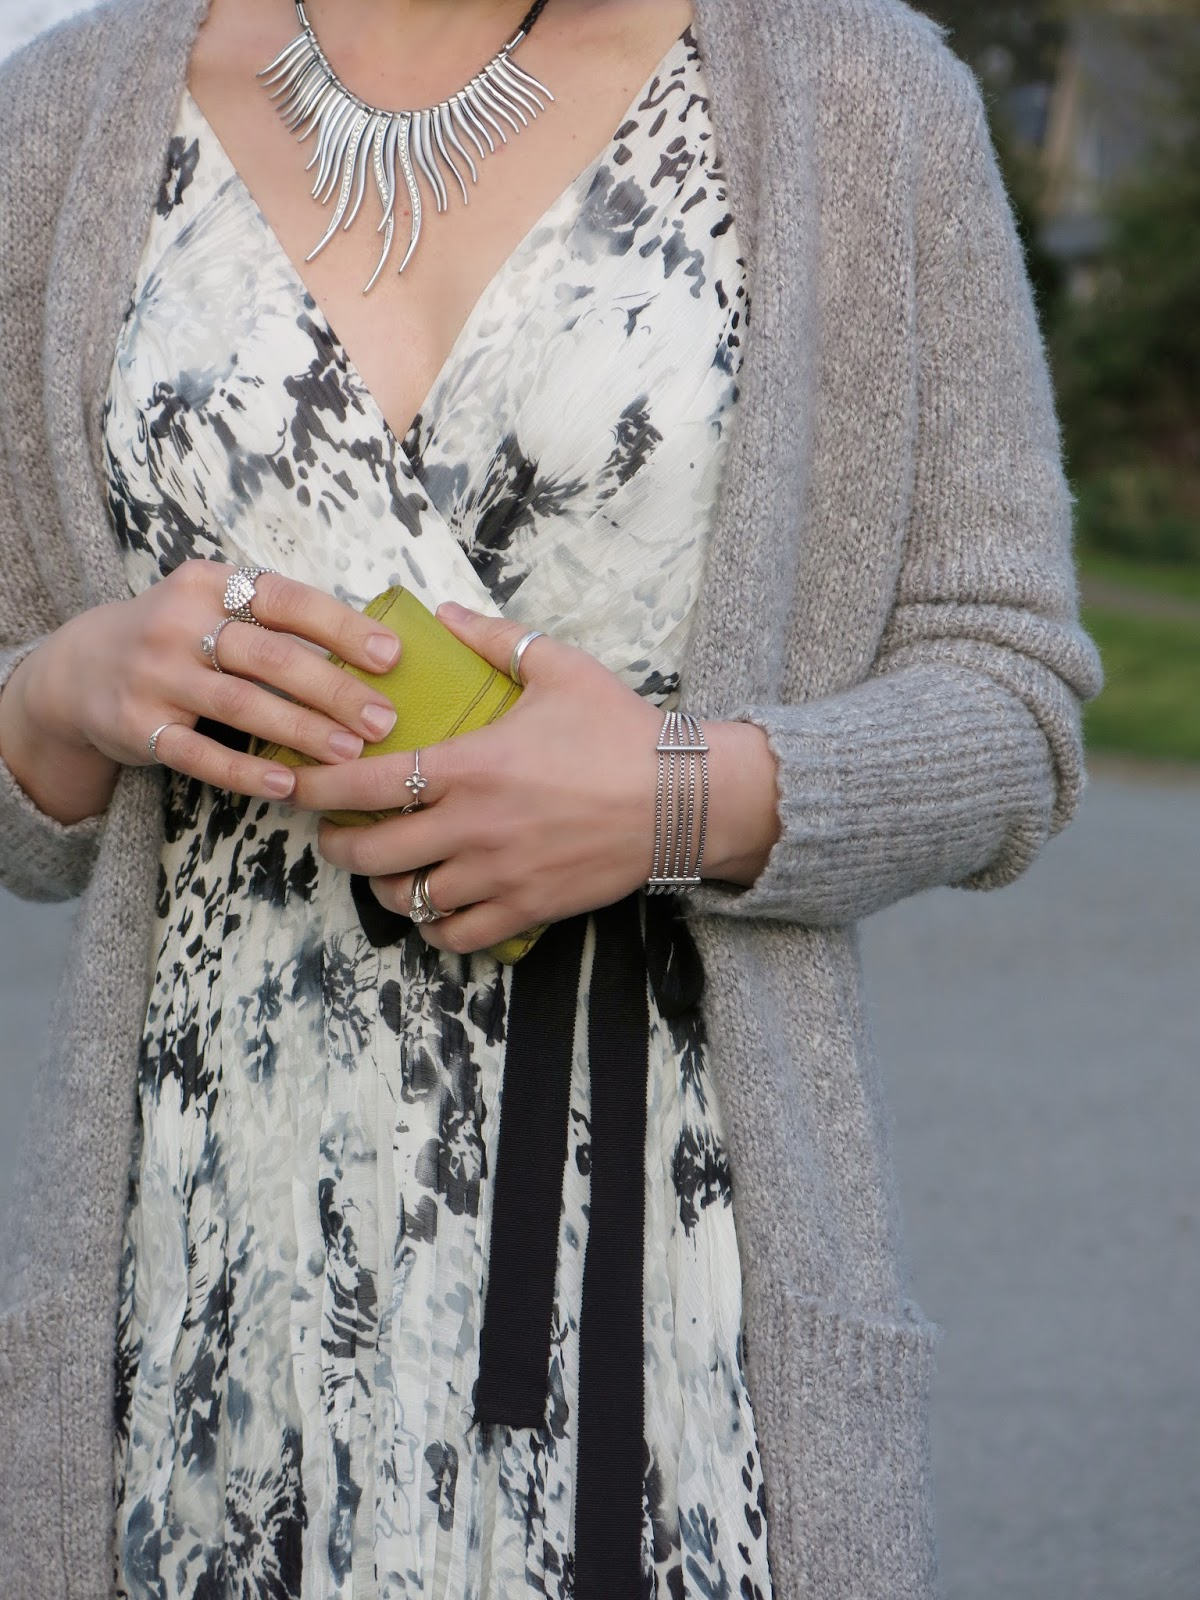 printed chiffon dress with a long cardigan and accessories